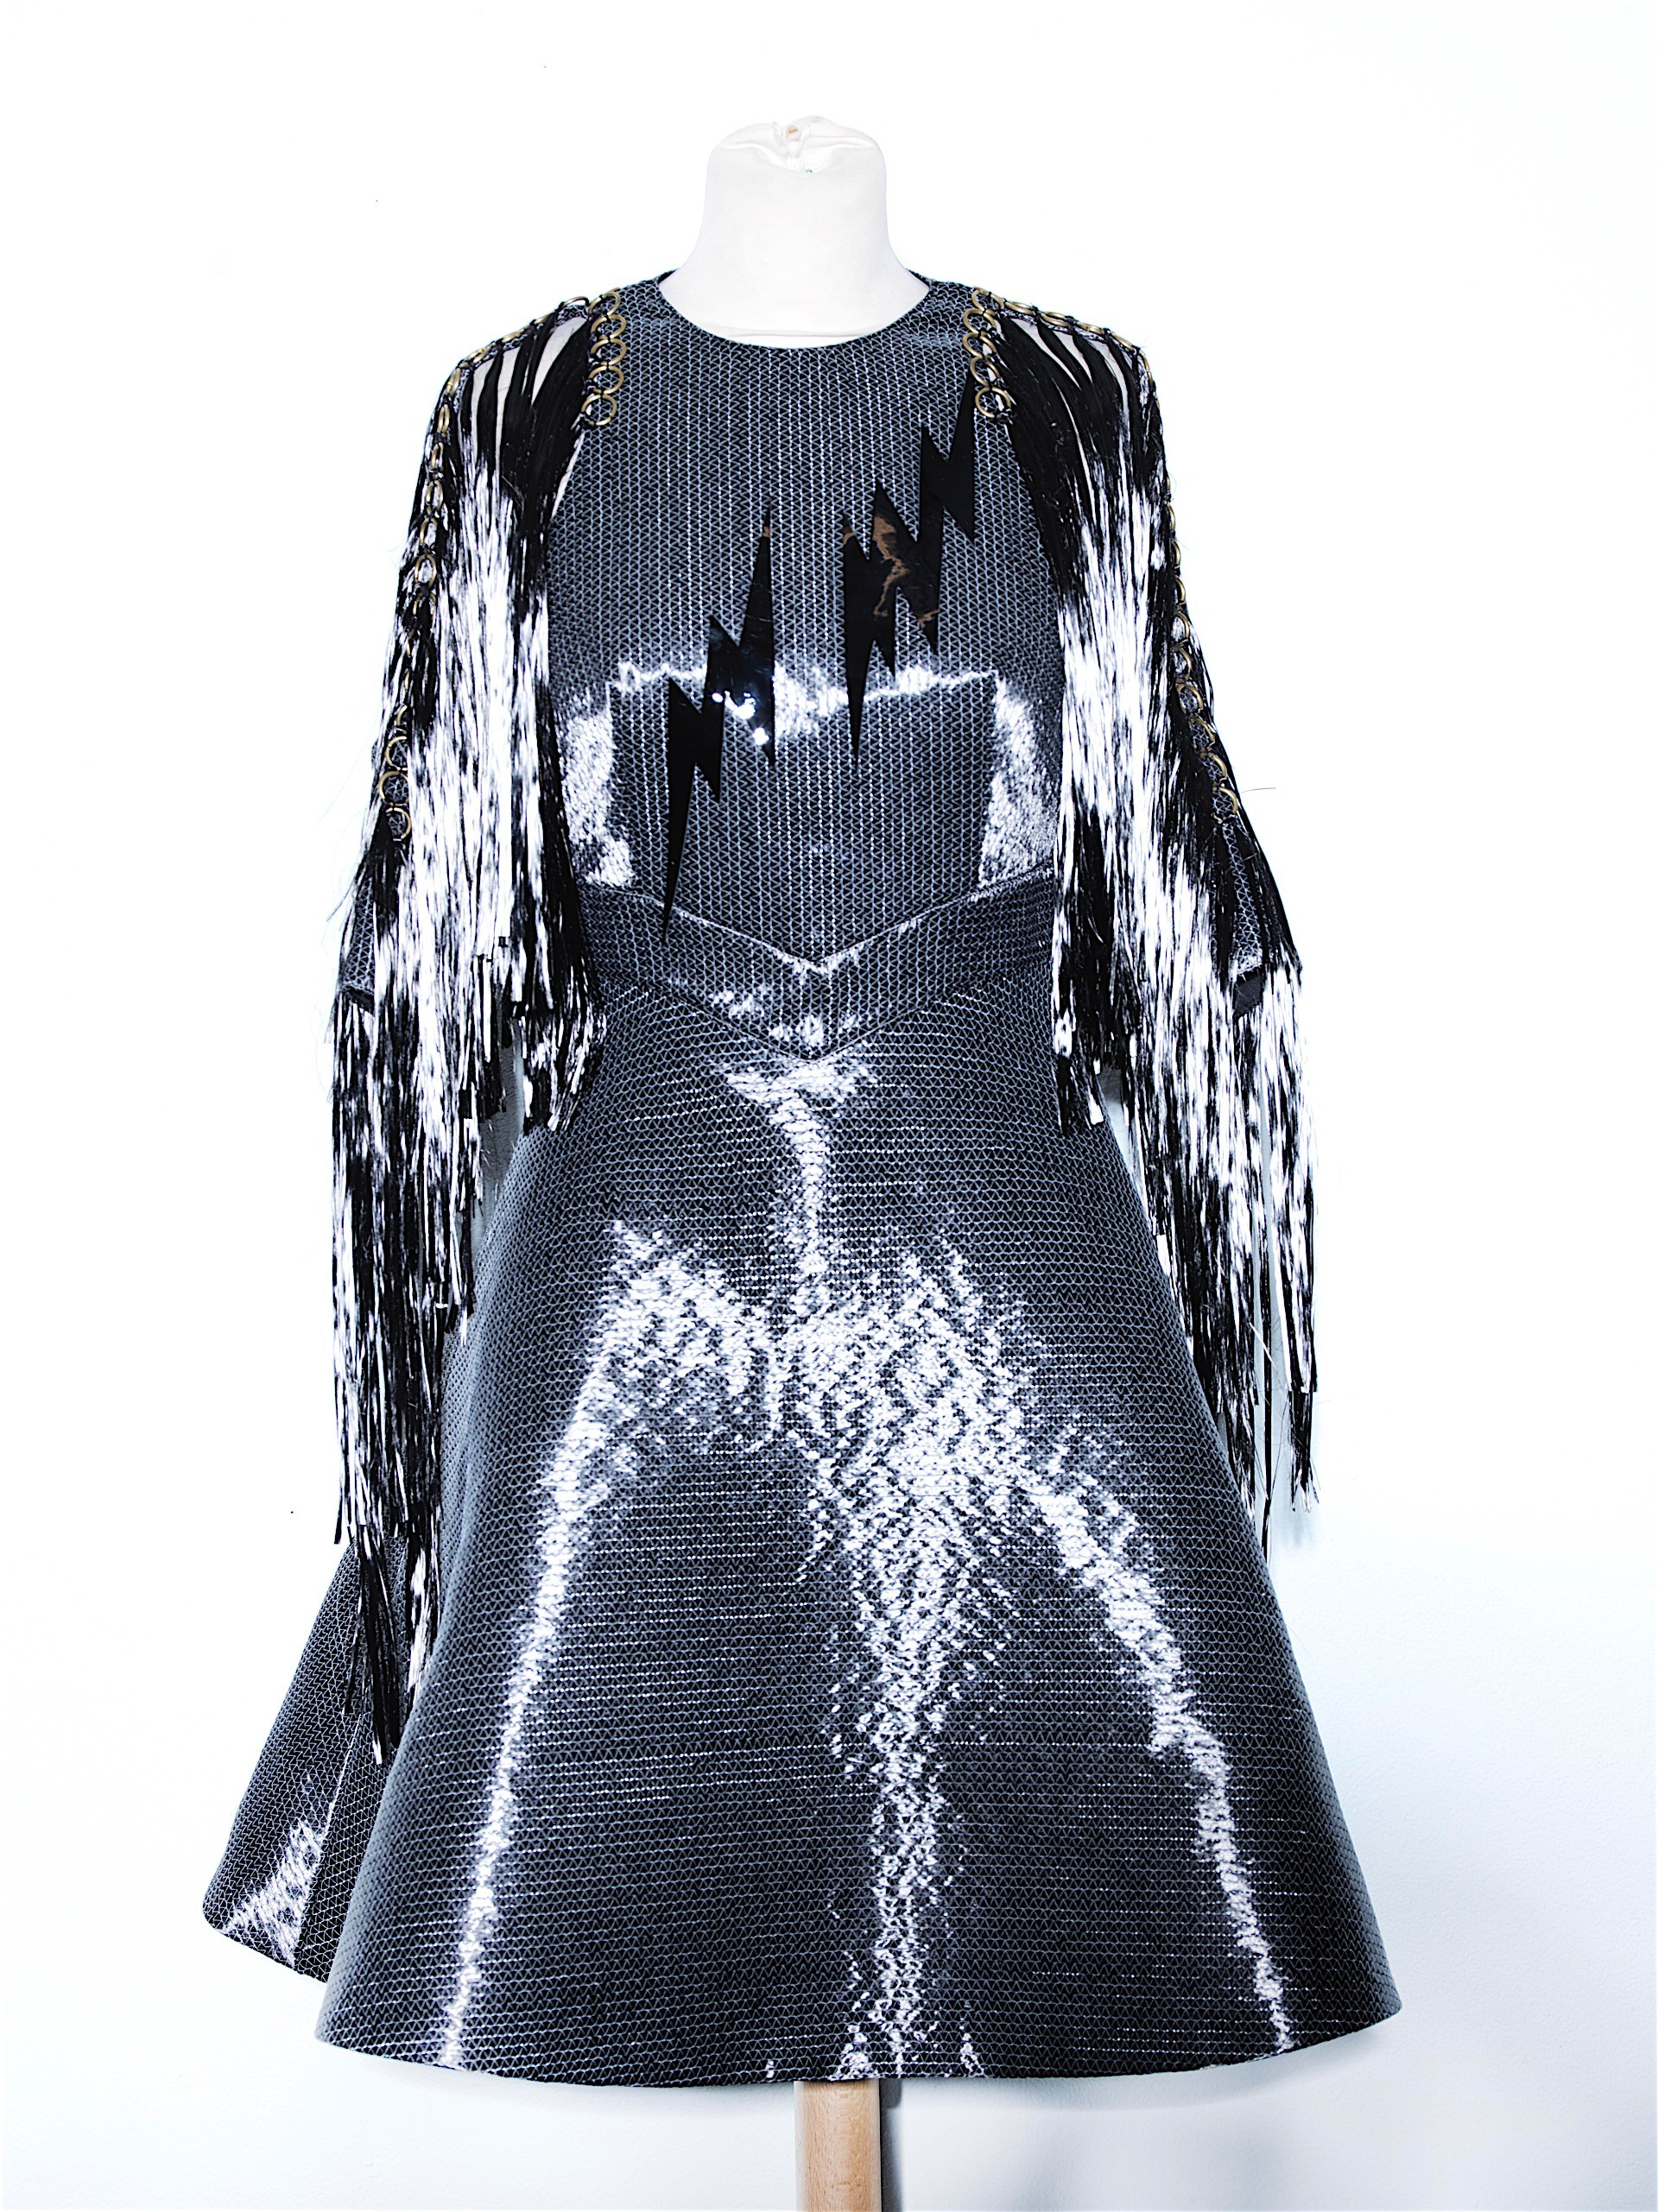 Fashion Designers Create Dress Out Of Carbon Fiber From